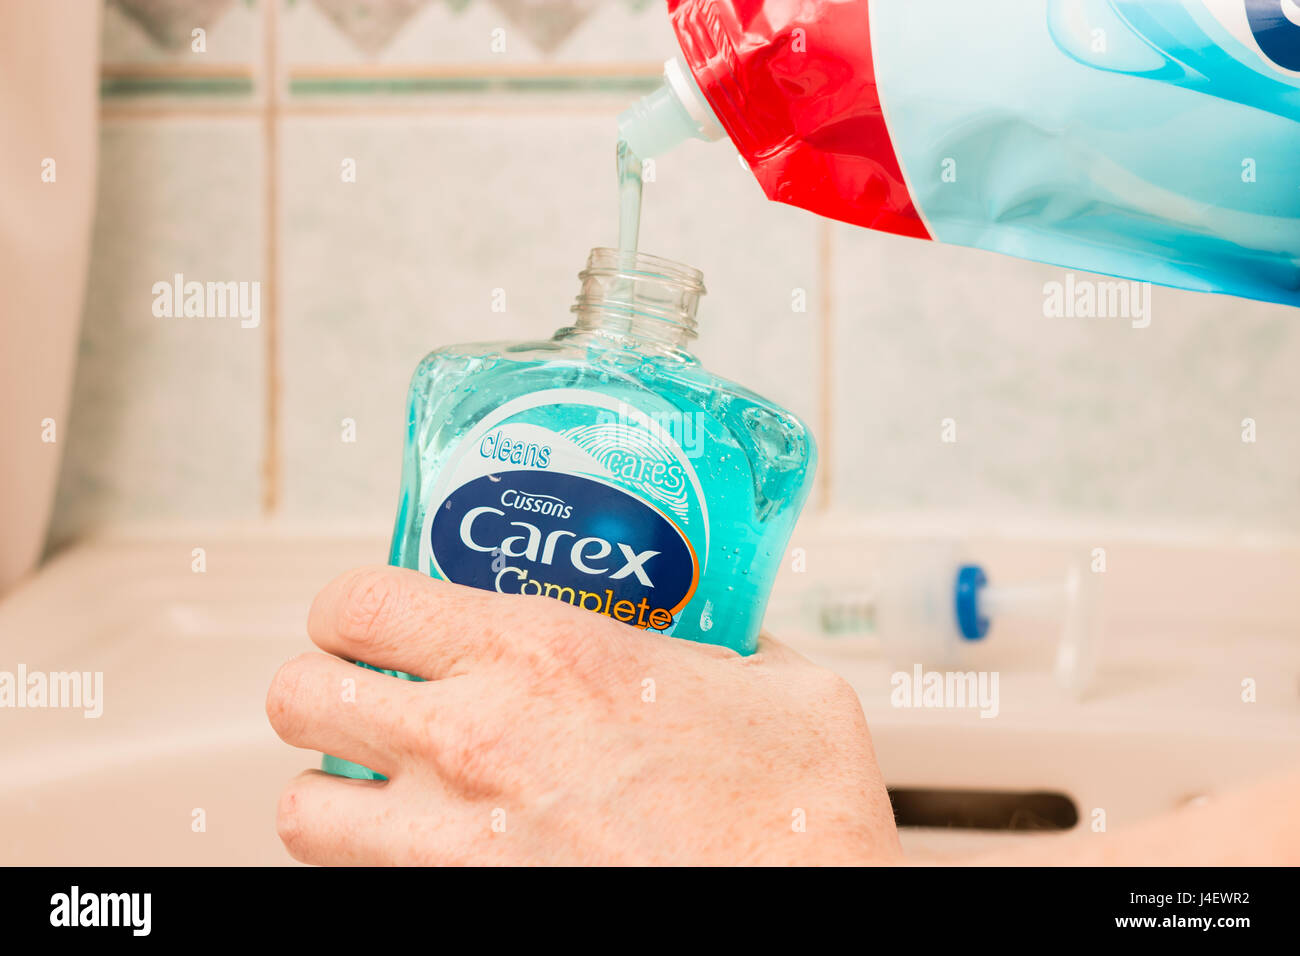 A pump action hand soap being refiled with an 'eco friendly' refill bag using 85% less plastic then buying - Stock Image